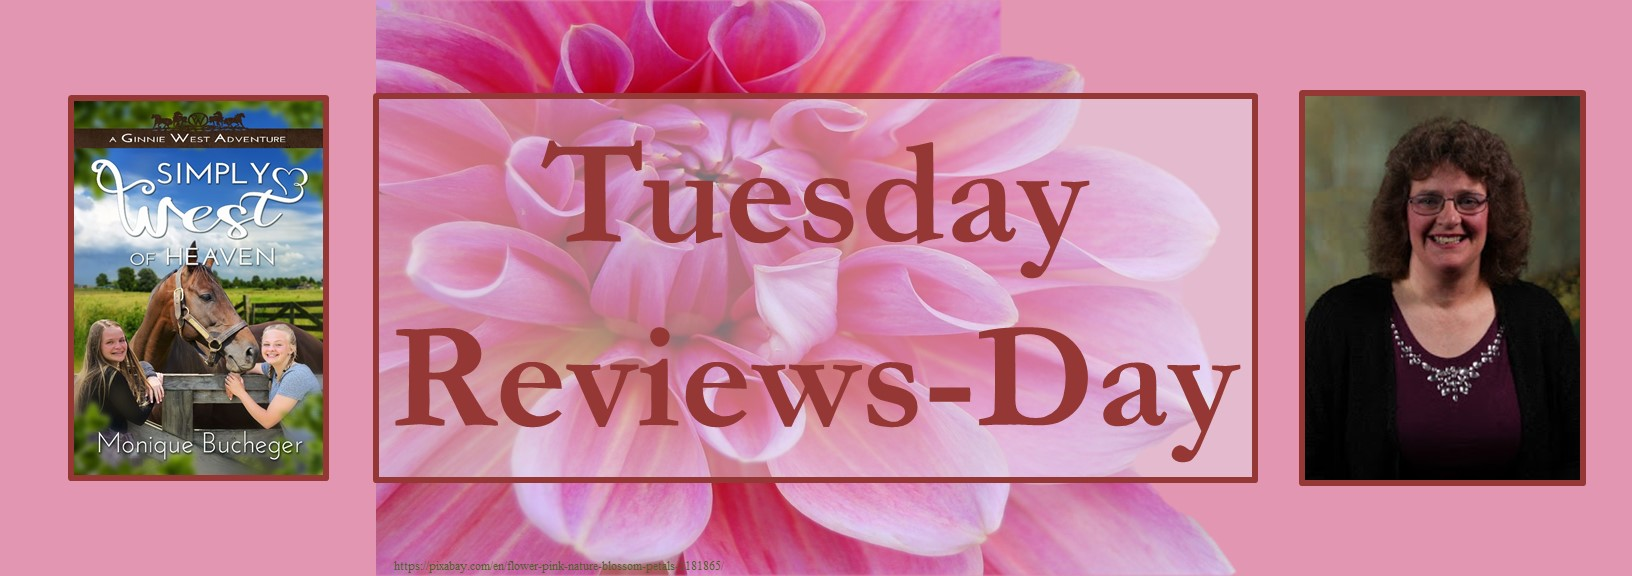 101320 - simply west - tuesday reviews day banner